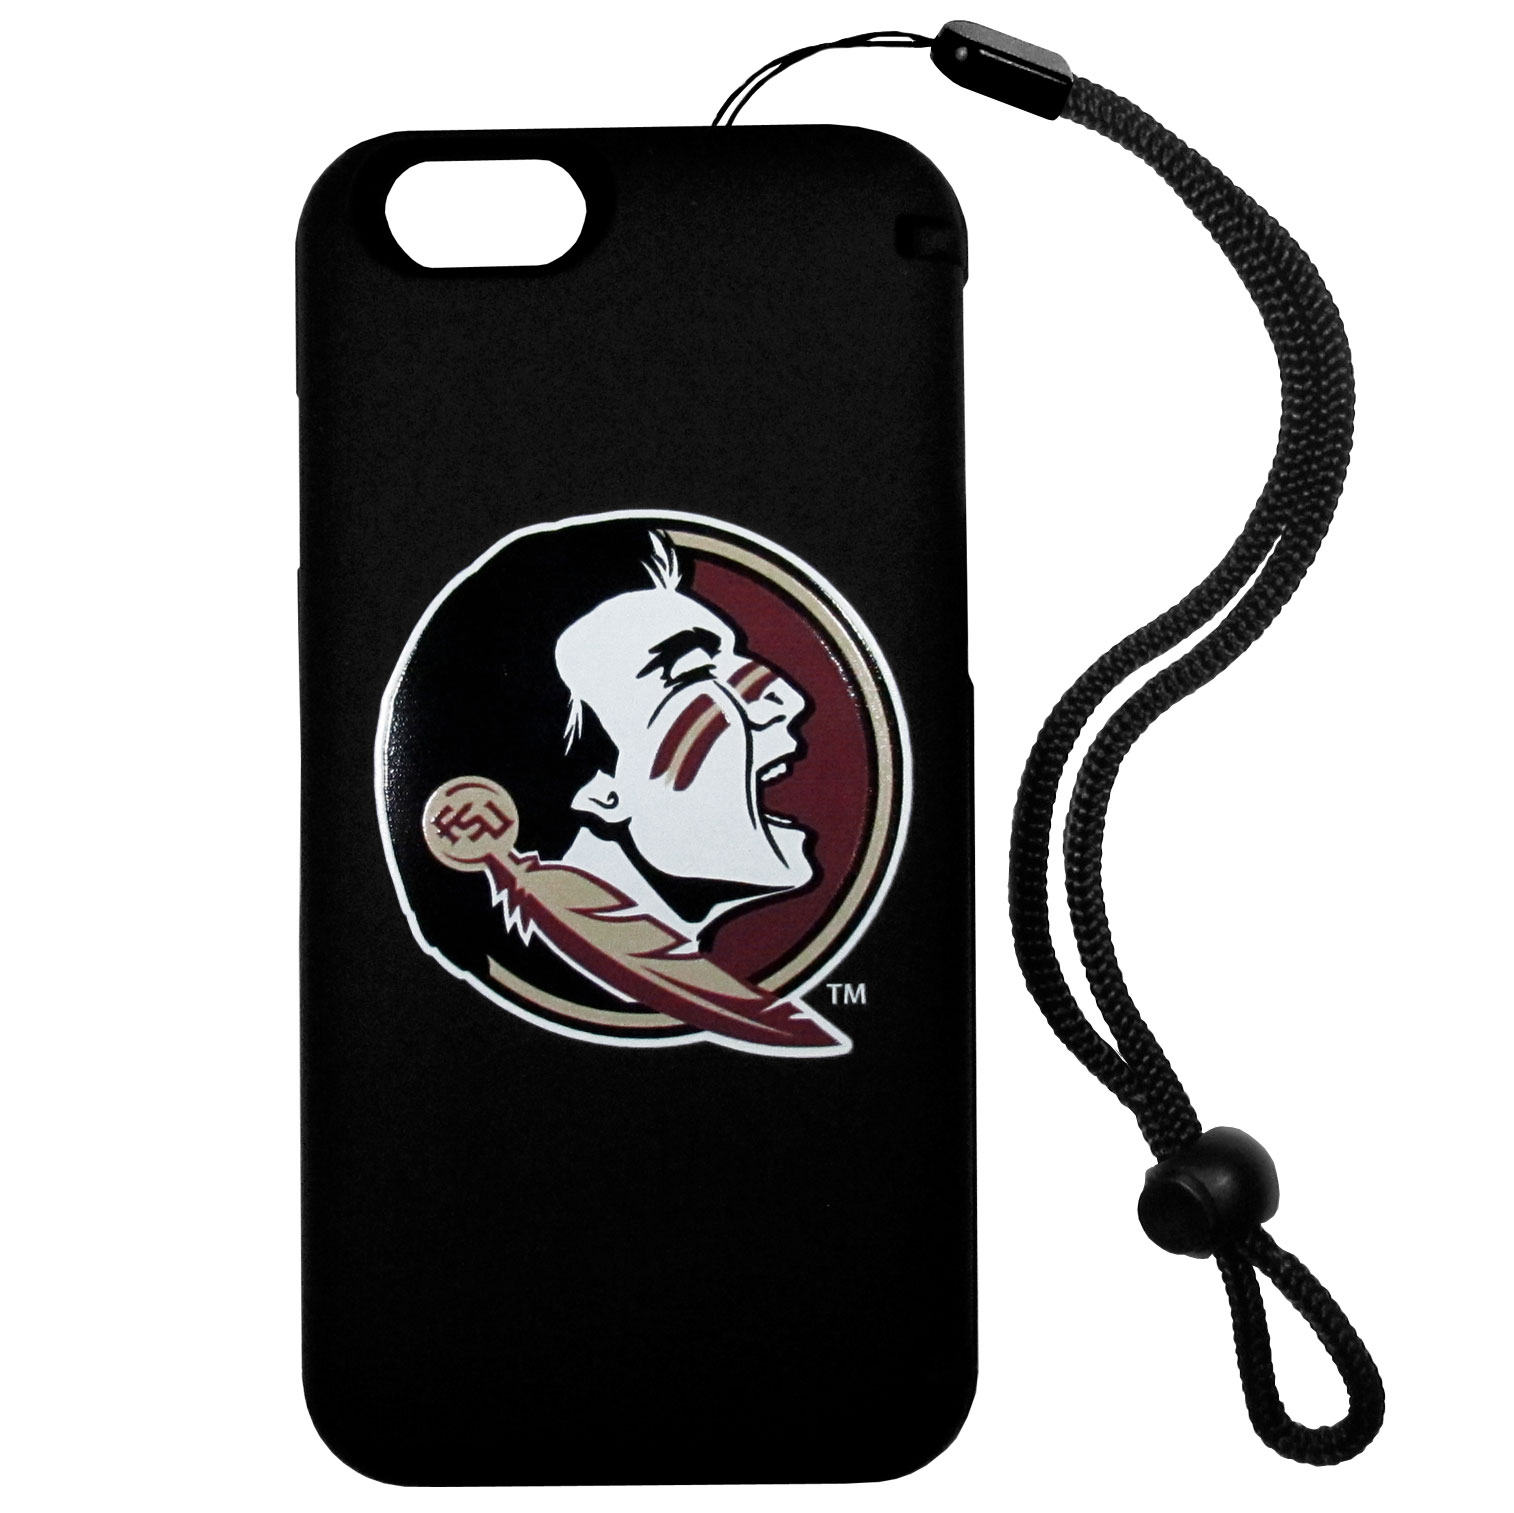 Florida St. Seminoles iPhone 6 Everything Case - This case really does have everything but the kitchen sink! The hidden compartment lets you keep your cards, money and tickets to the big game safe and secure and has a compact mirror so you can make sure your game face is ready to go. It also comes with a kickstand to make chatting and watching videos a breeze. The wrist strap allows you to travel with ease with your everything case. If that's not enough, it also comes with the Florida St. Seminoles logo printed in expert detail on the front.